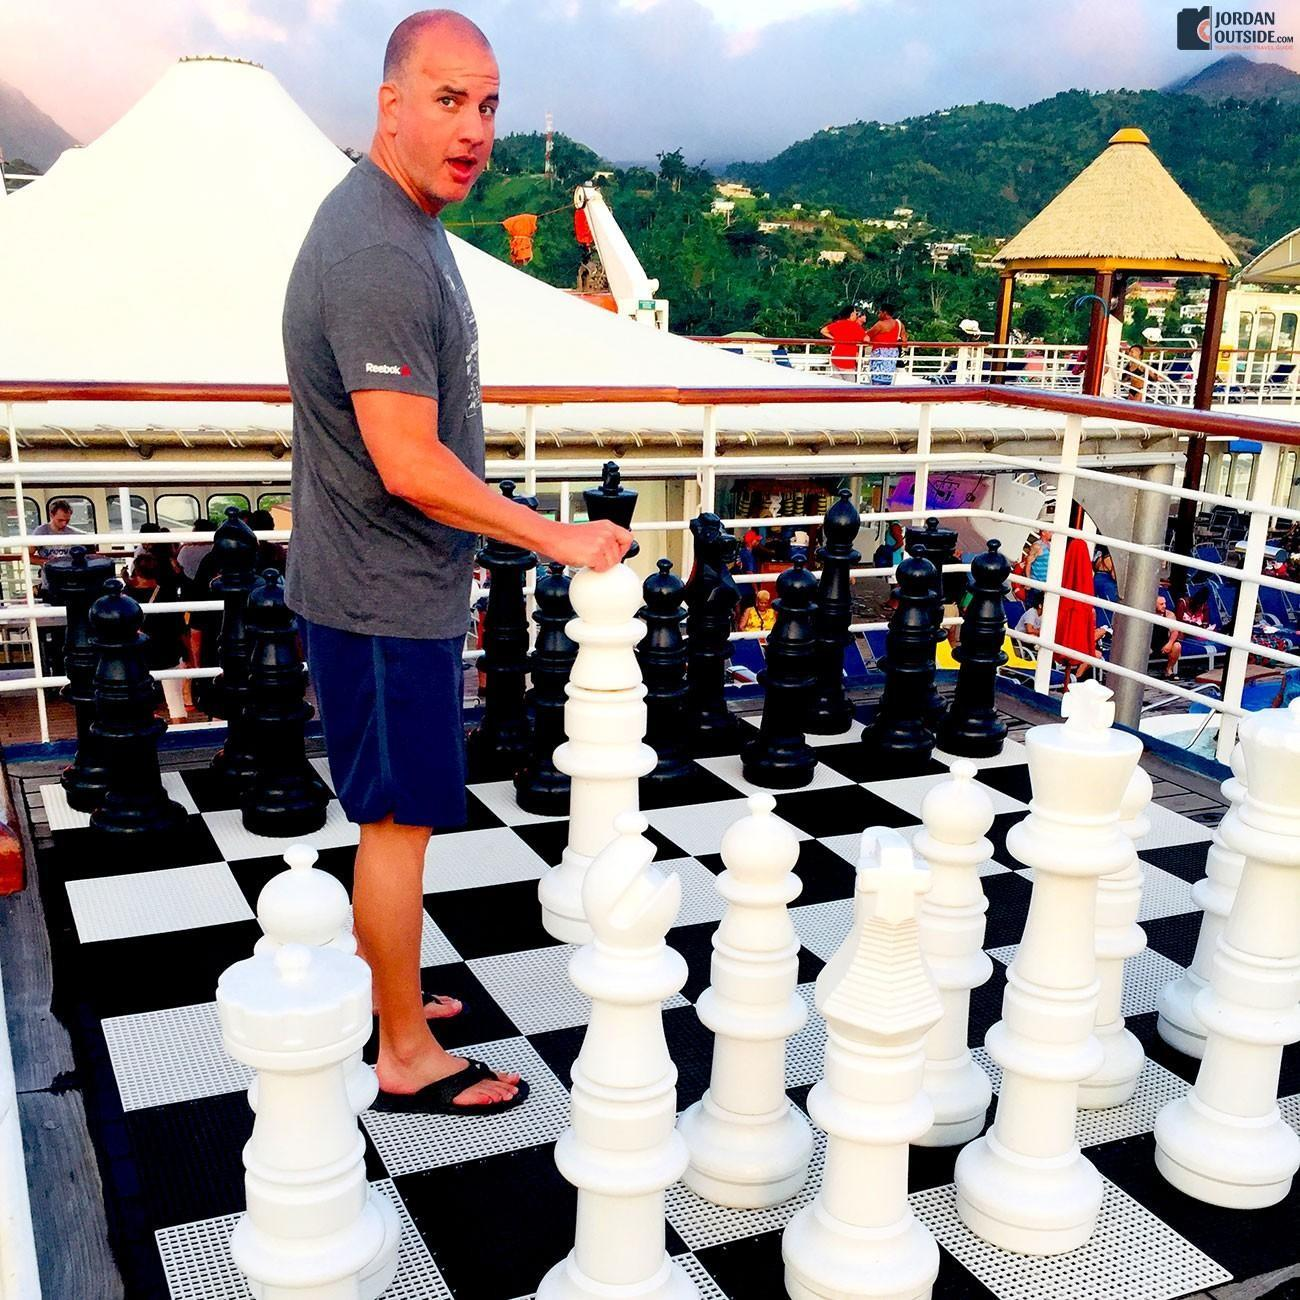 Life size chess on the cruise ship